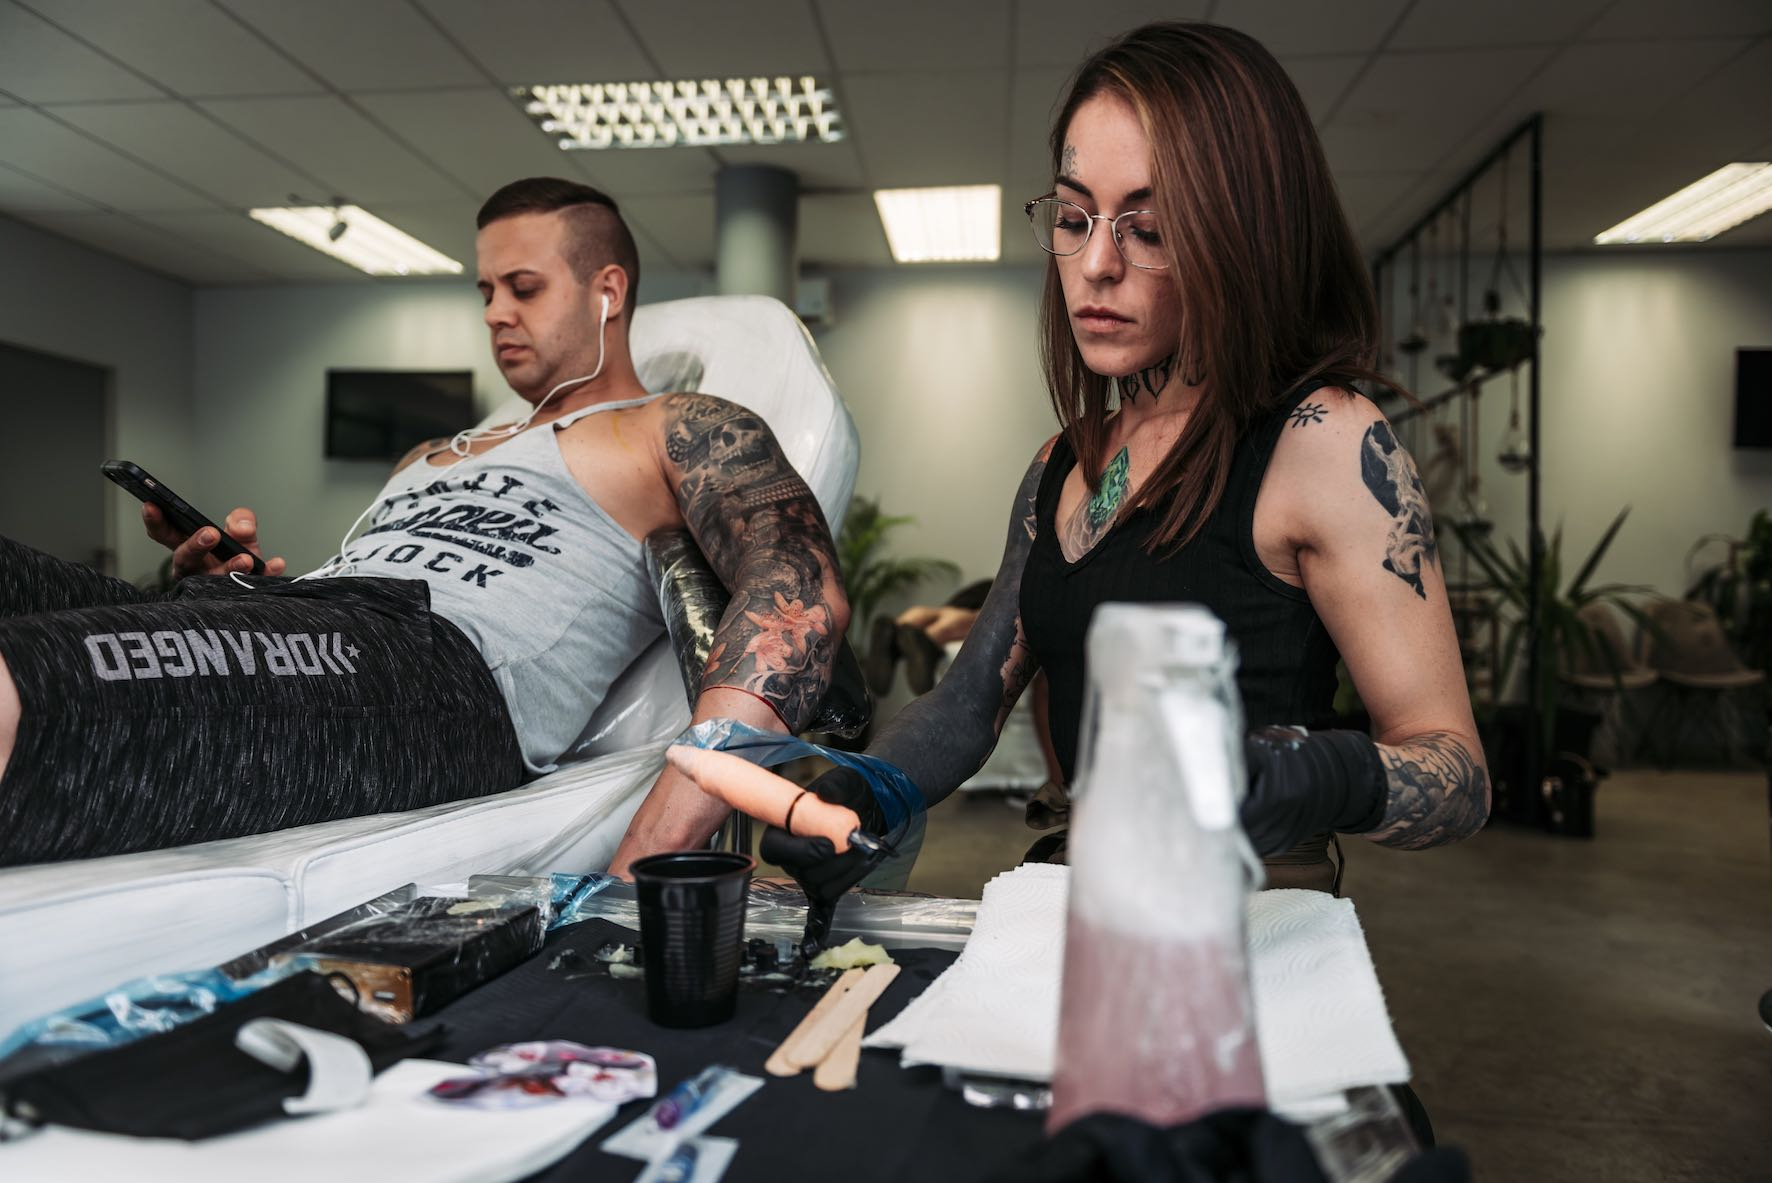 Meet Tattoo Artist Lileen van den Berg of Artrageous Tattoos